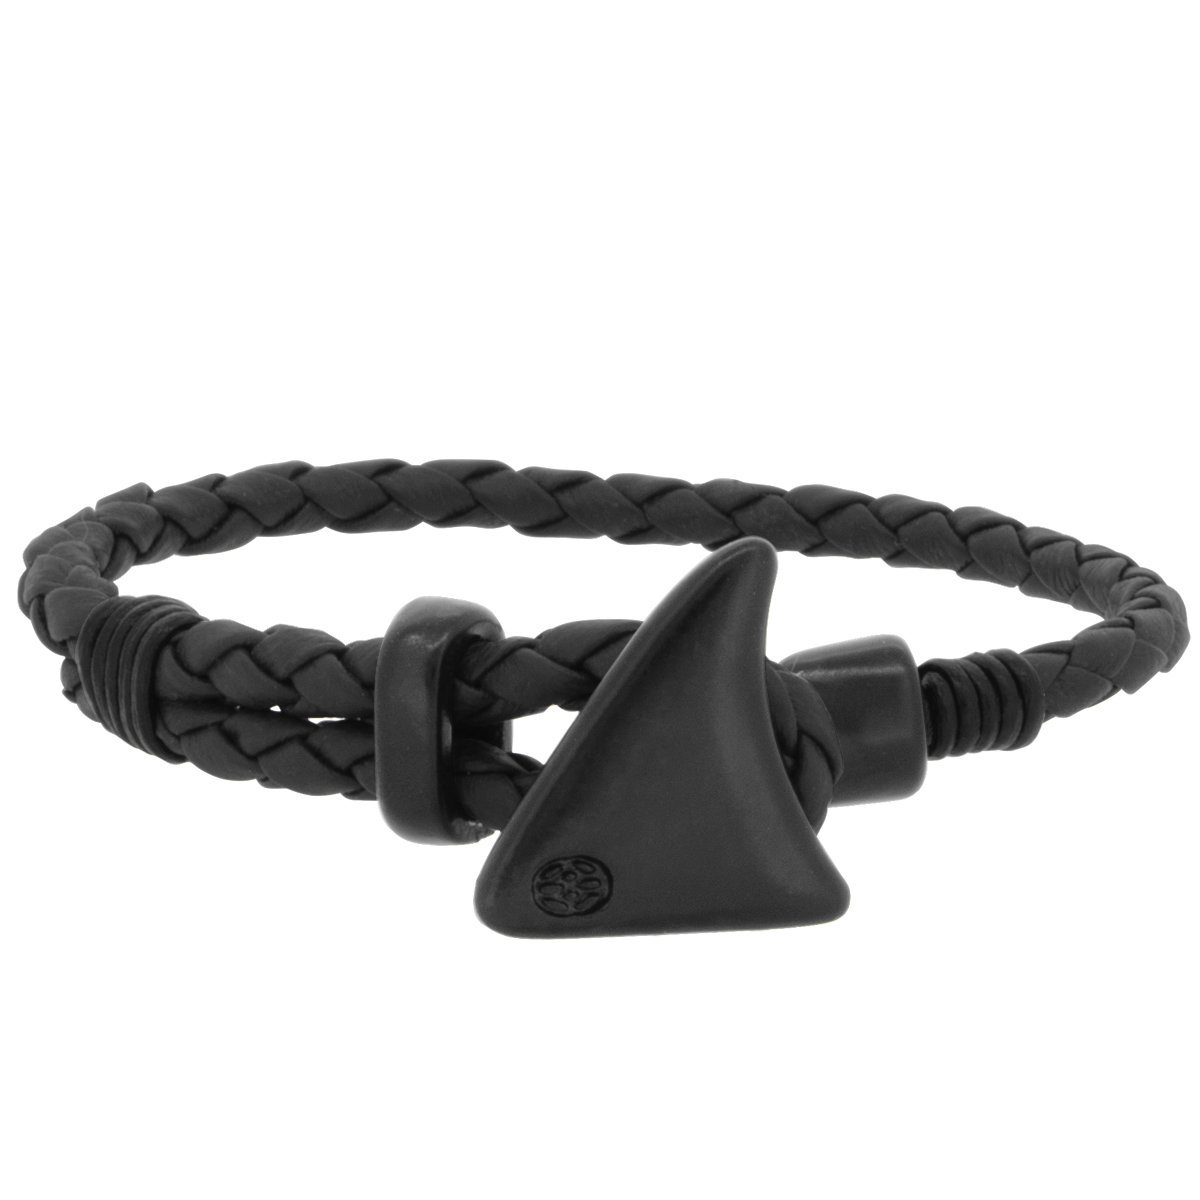 Bracelet - Nappina Nappa Black Leather Shark Fin BK